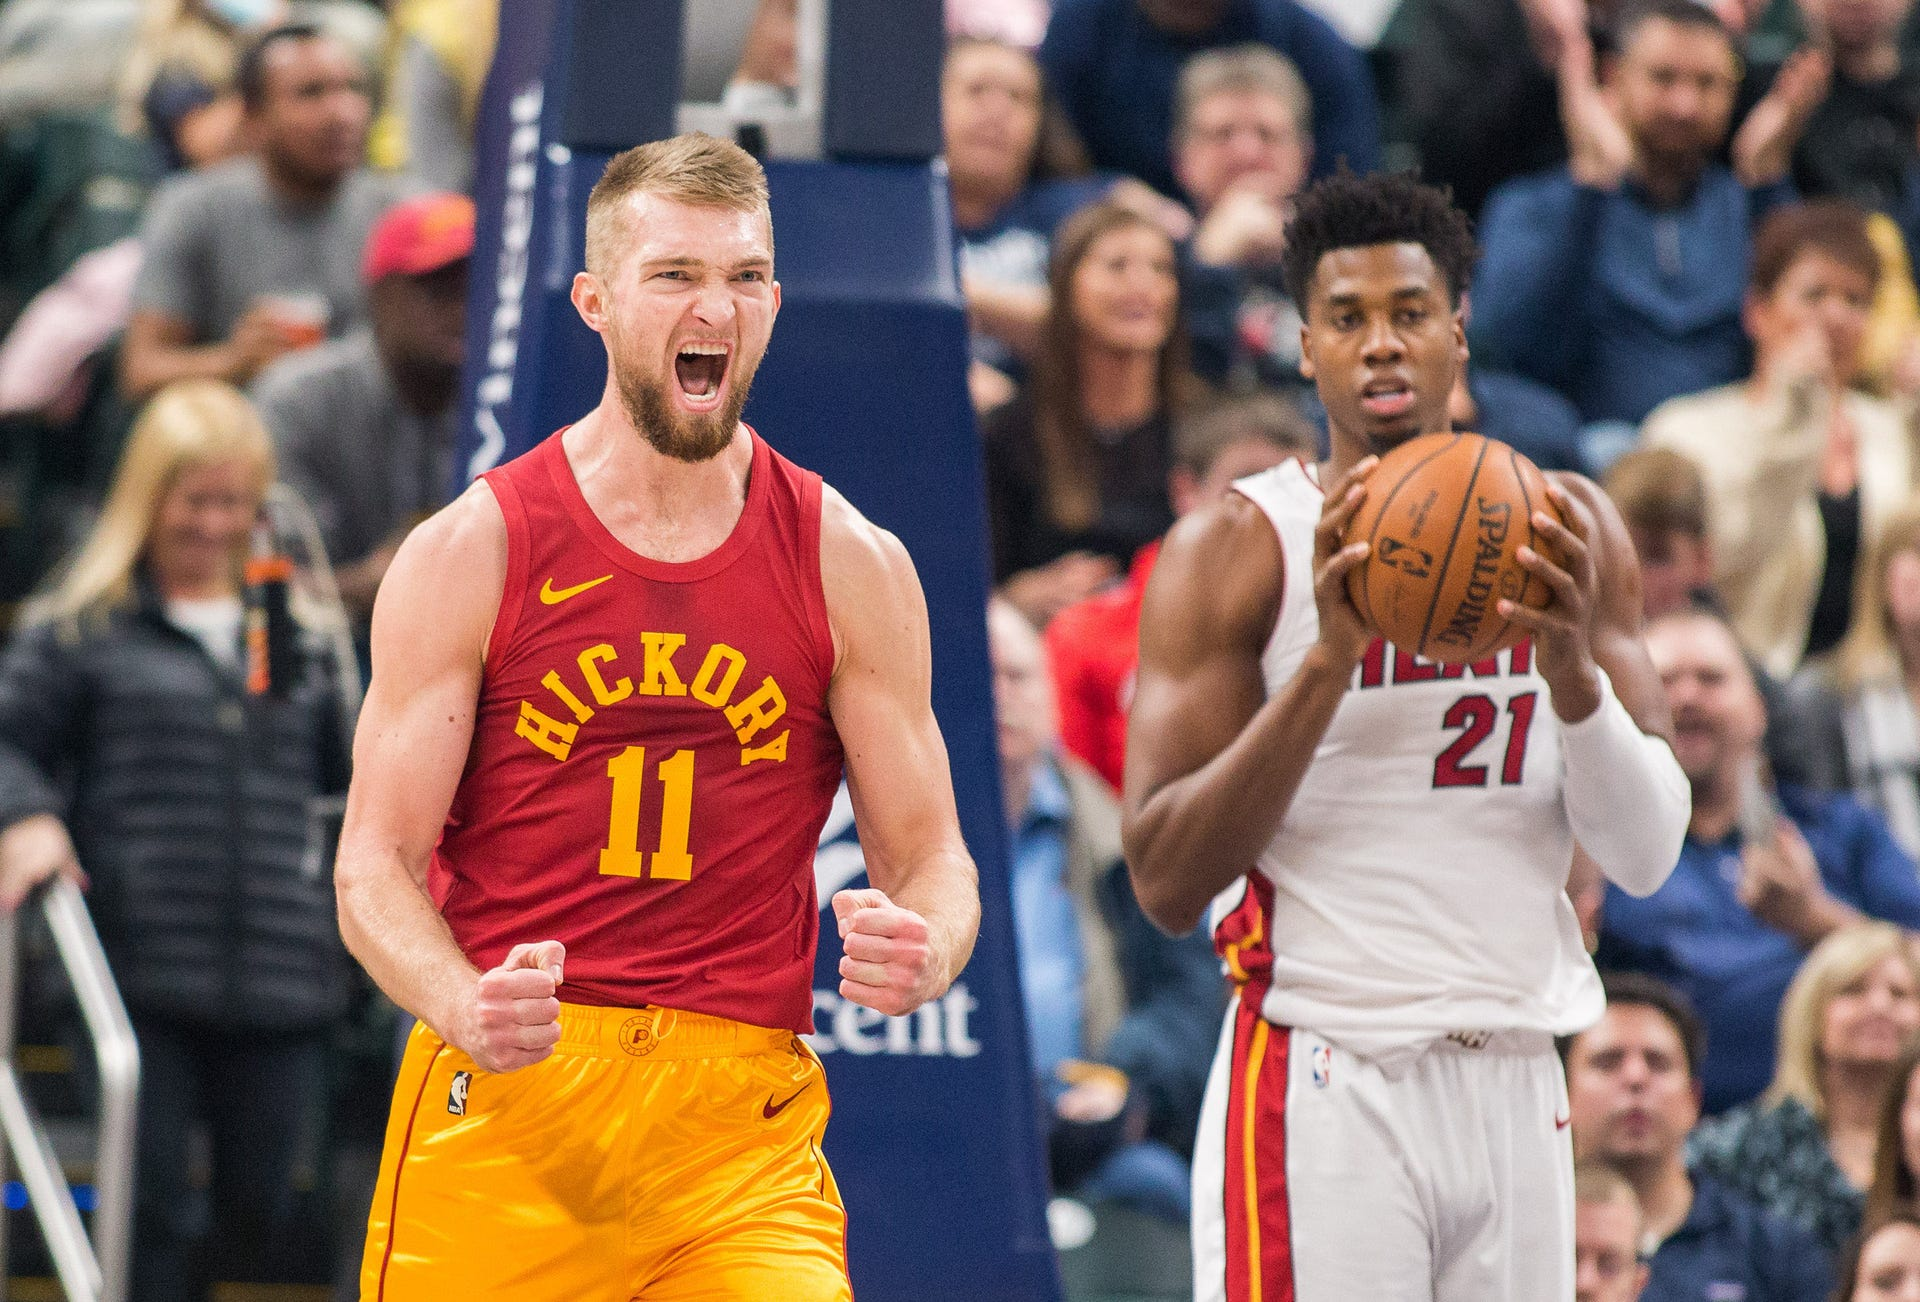 Photos: Pacers welcome Heat on Hickory night